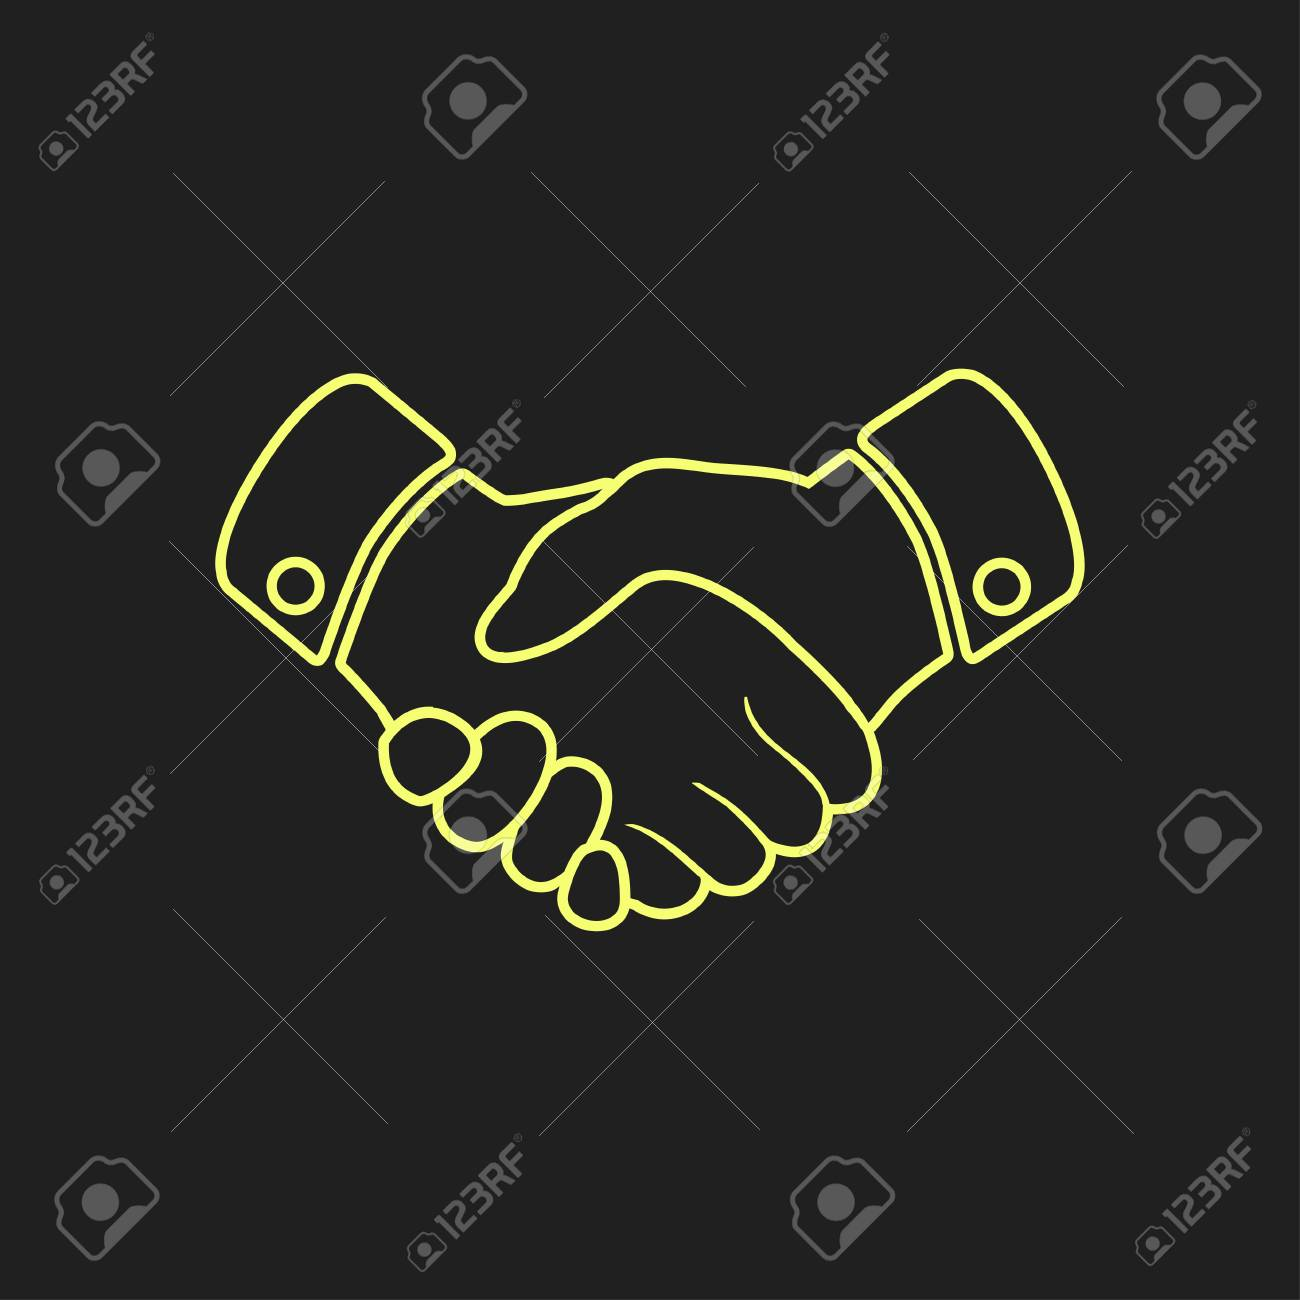 87967382-handshake-sign-icon-successful-business-symbol-flat-design-style-.jpg